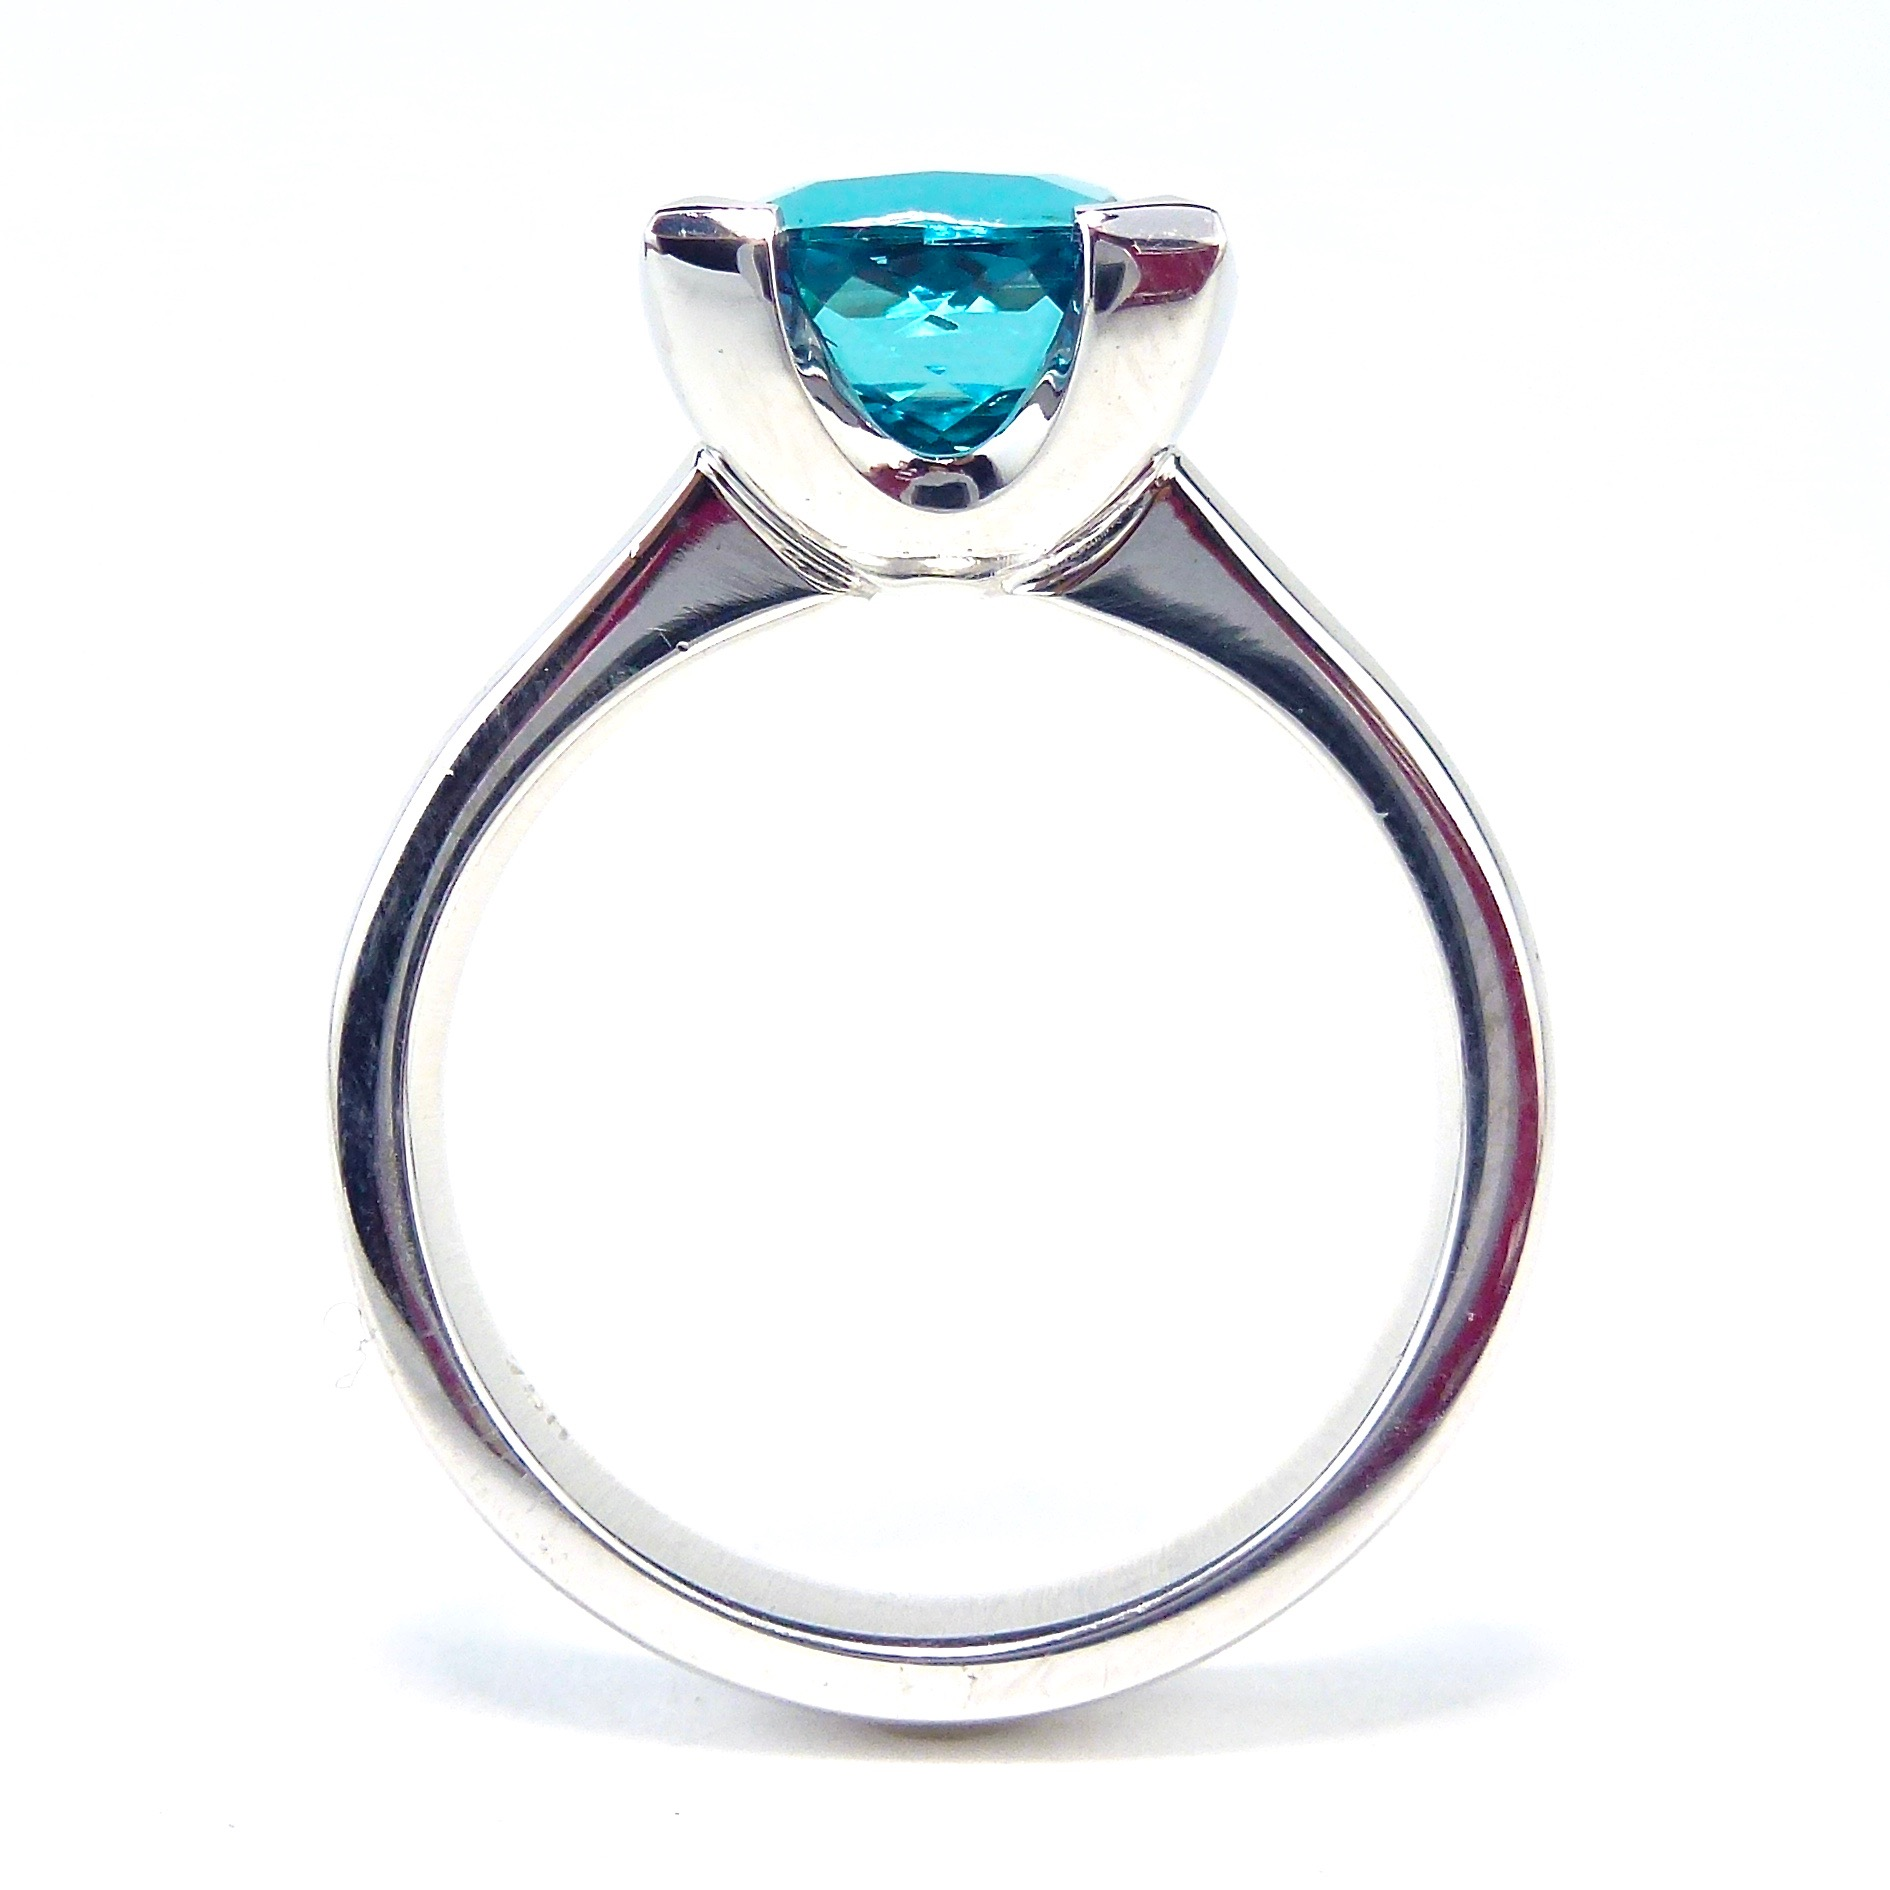 Teal tourmaline dress ring in white gold